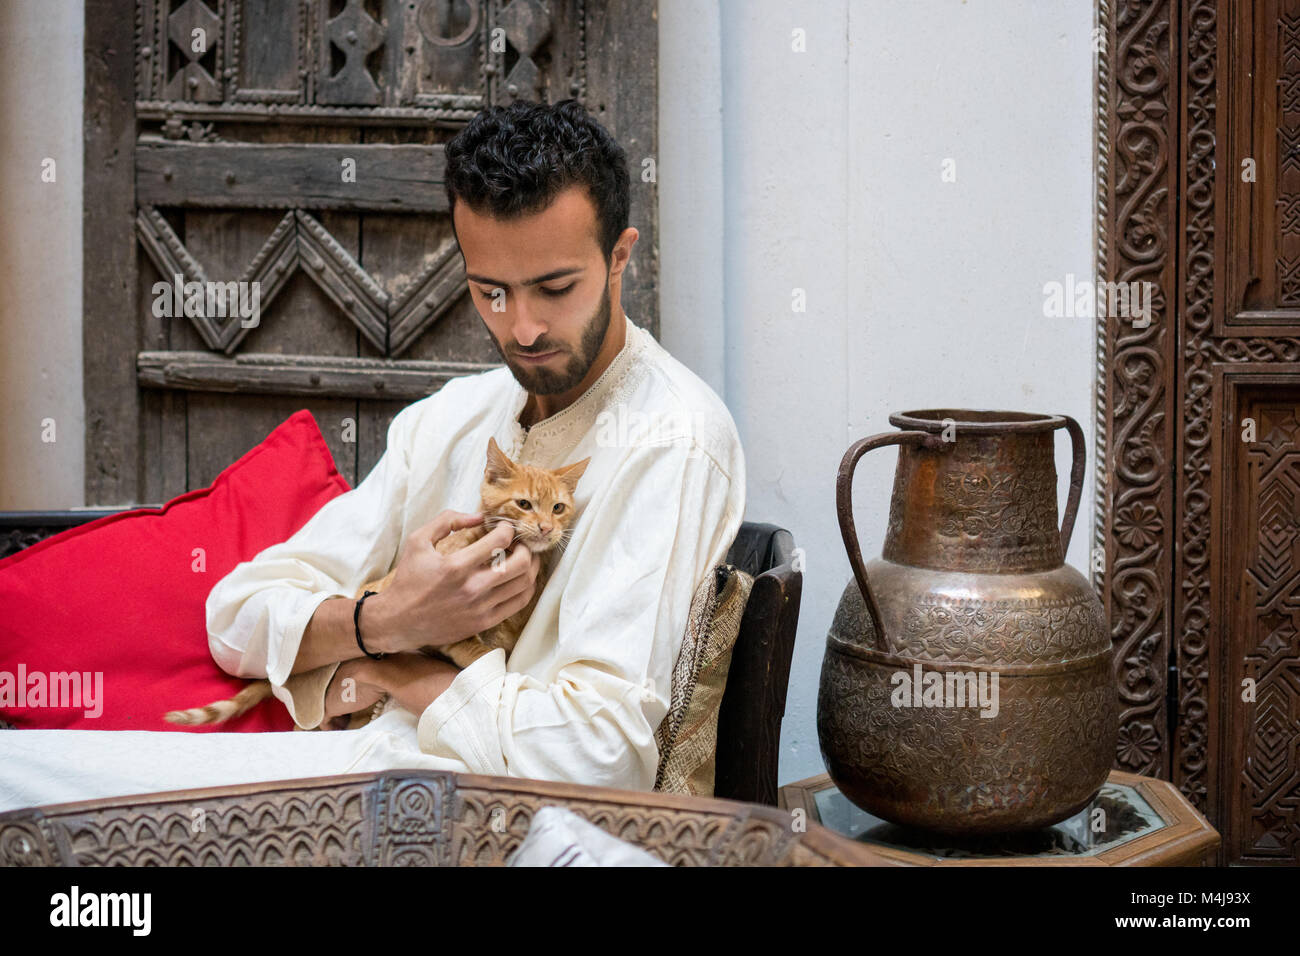 Young muslim man in traditional clothing holding a yellow cat in front of a decorated wall - Stock Image